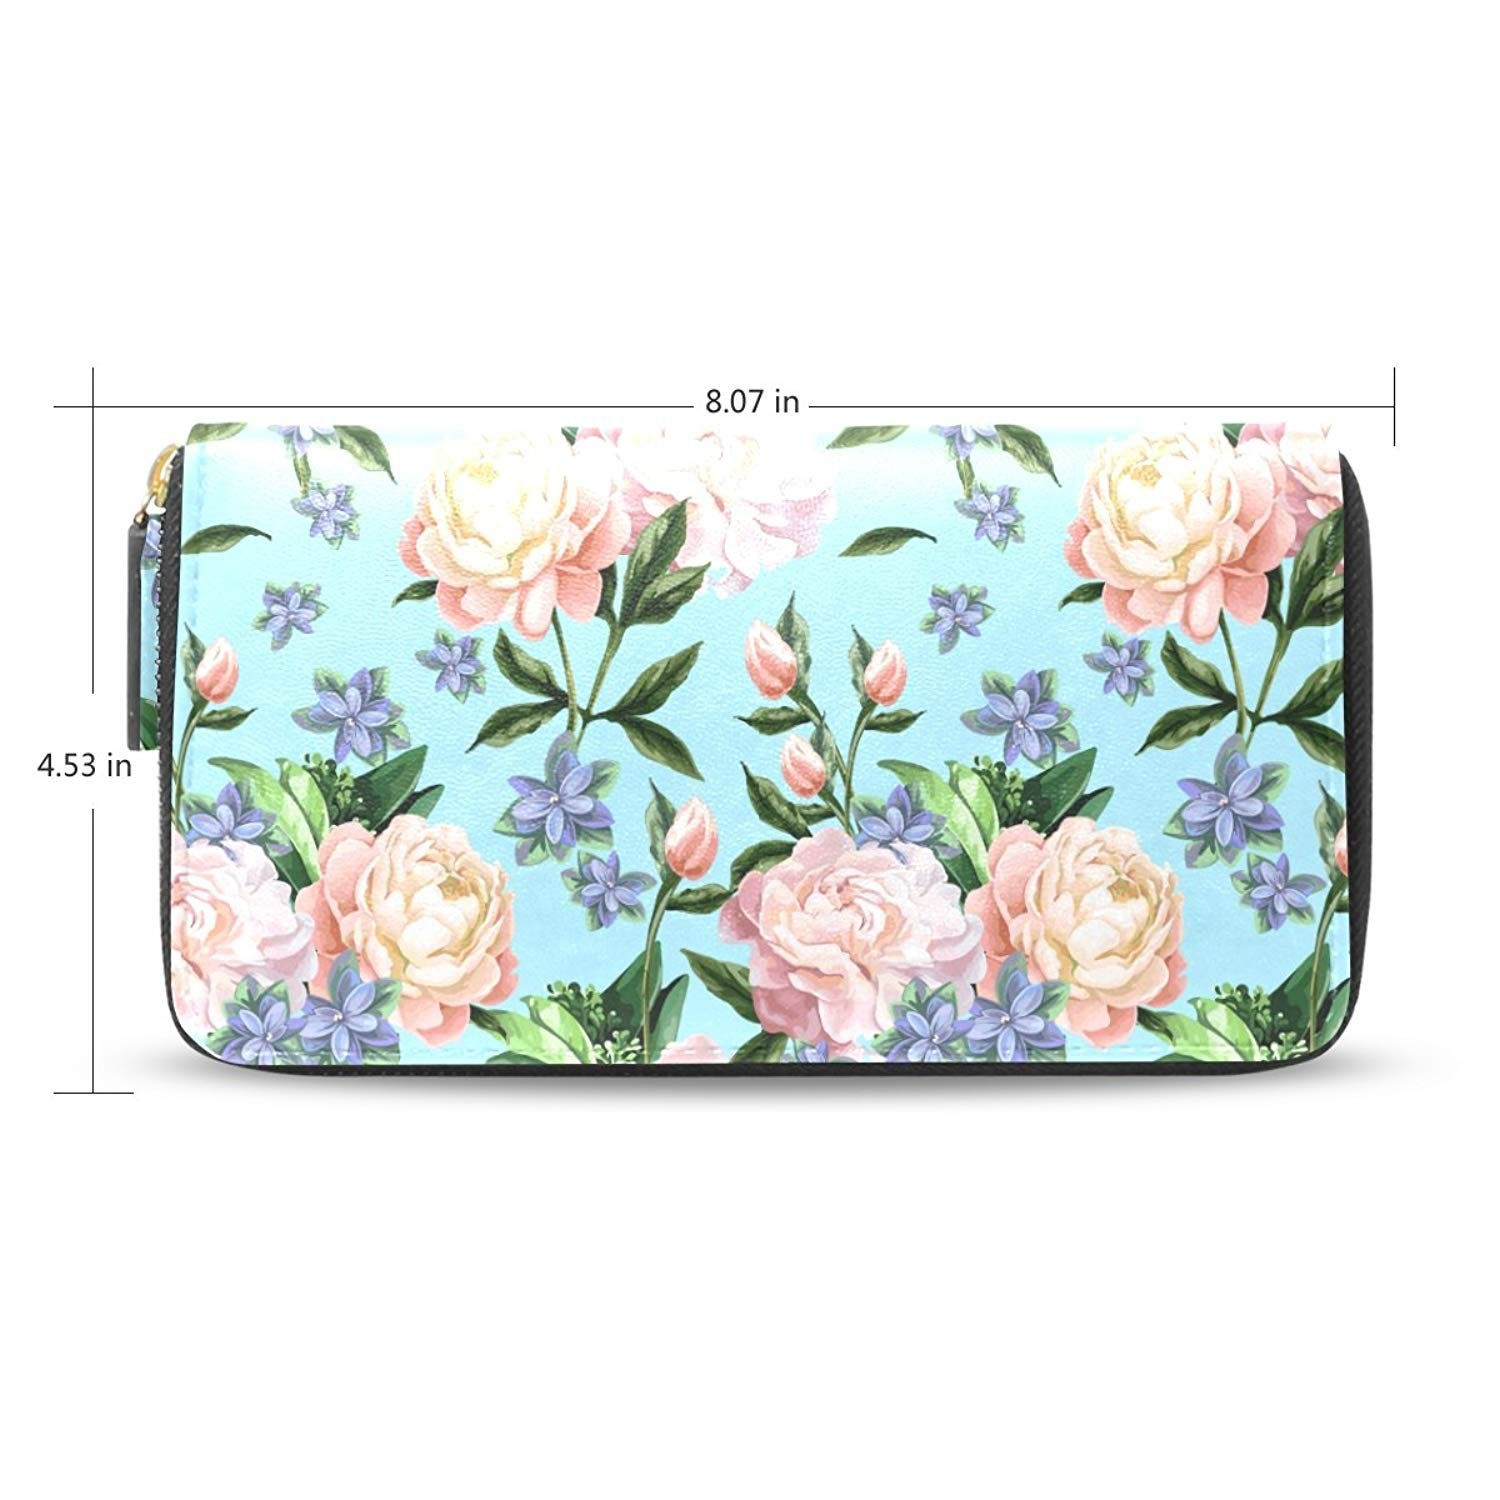 Long Peony Passport Wallets Classic Style Travel Clutch Purse Handbag